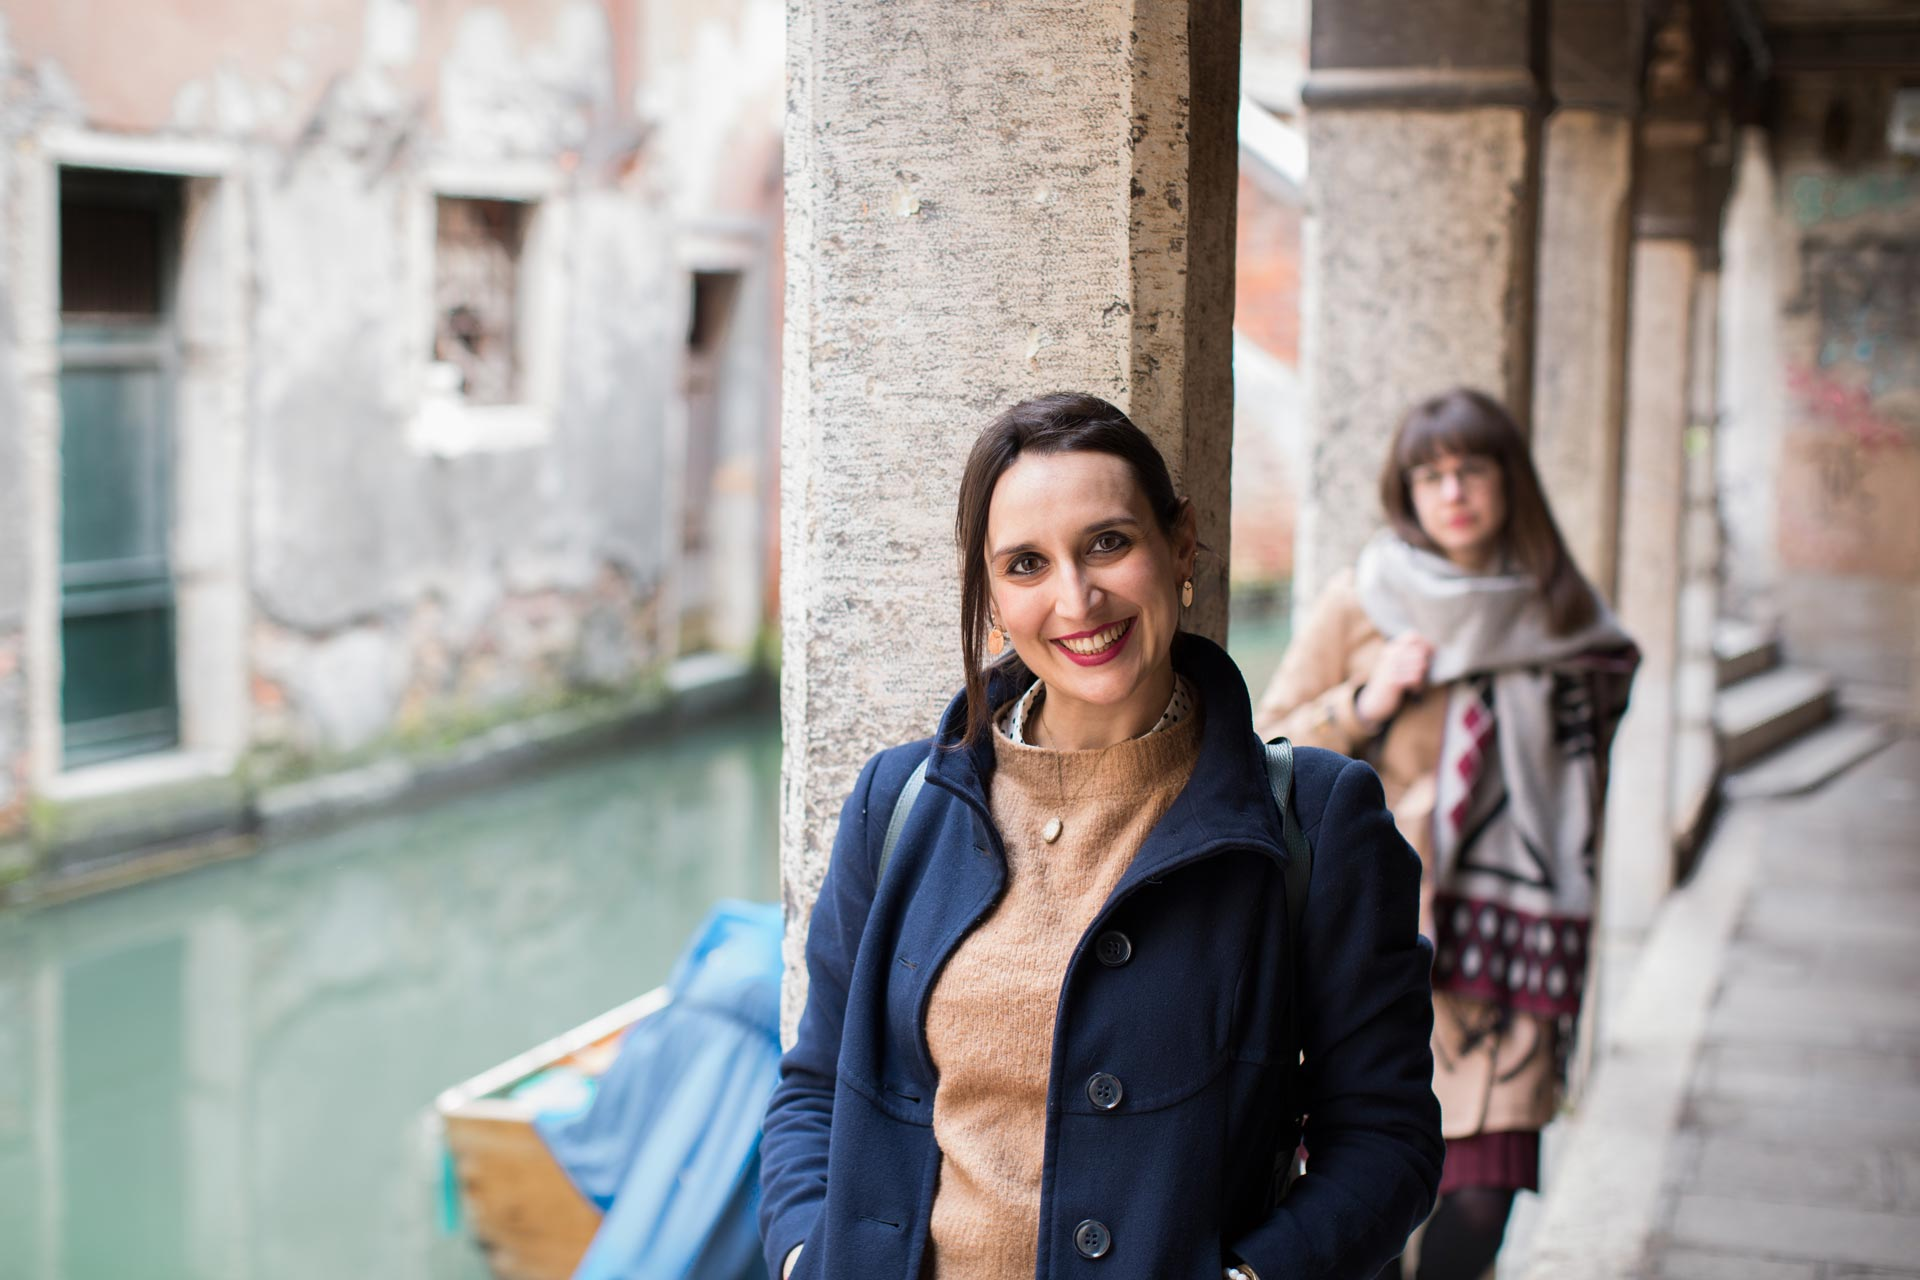 San-Polo-Calle-Luganegher-Francesca-Carina-portrait-photo-shooting-sunset-Venezia-Venice